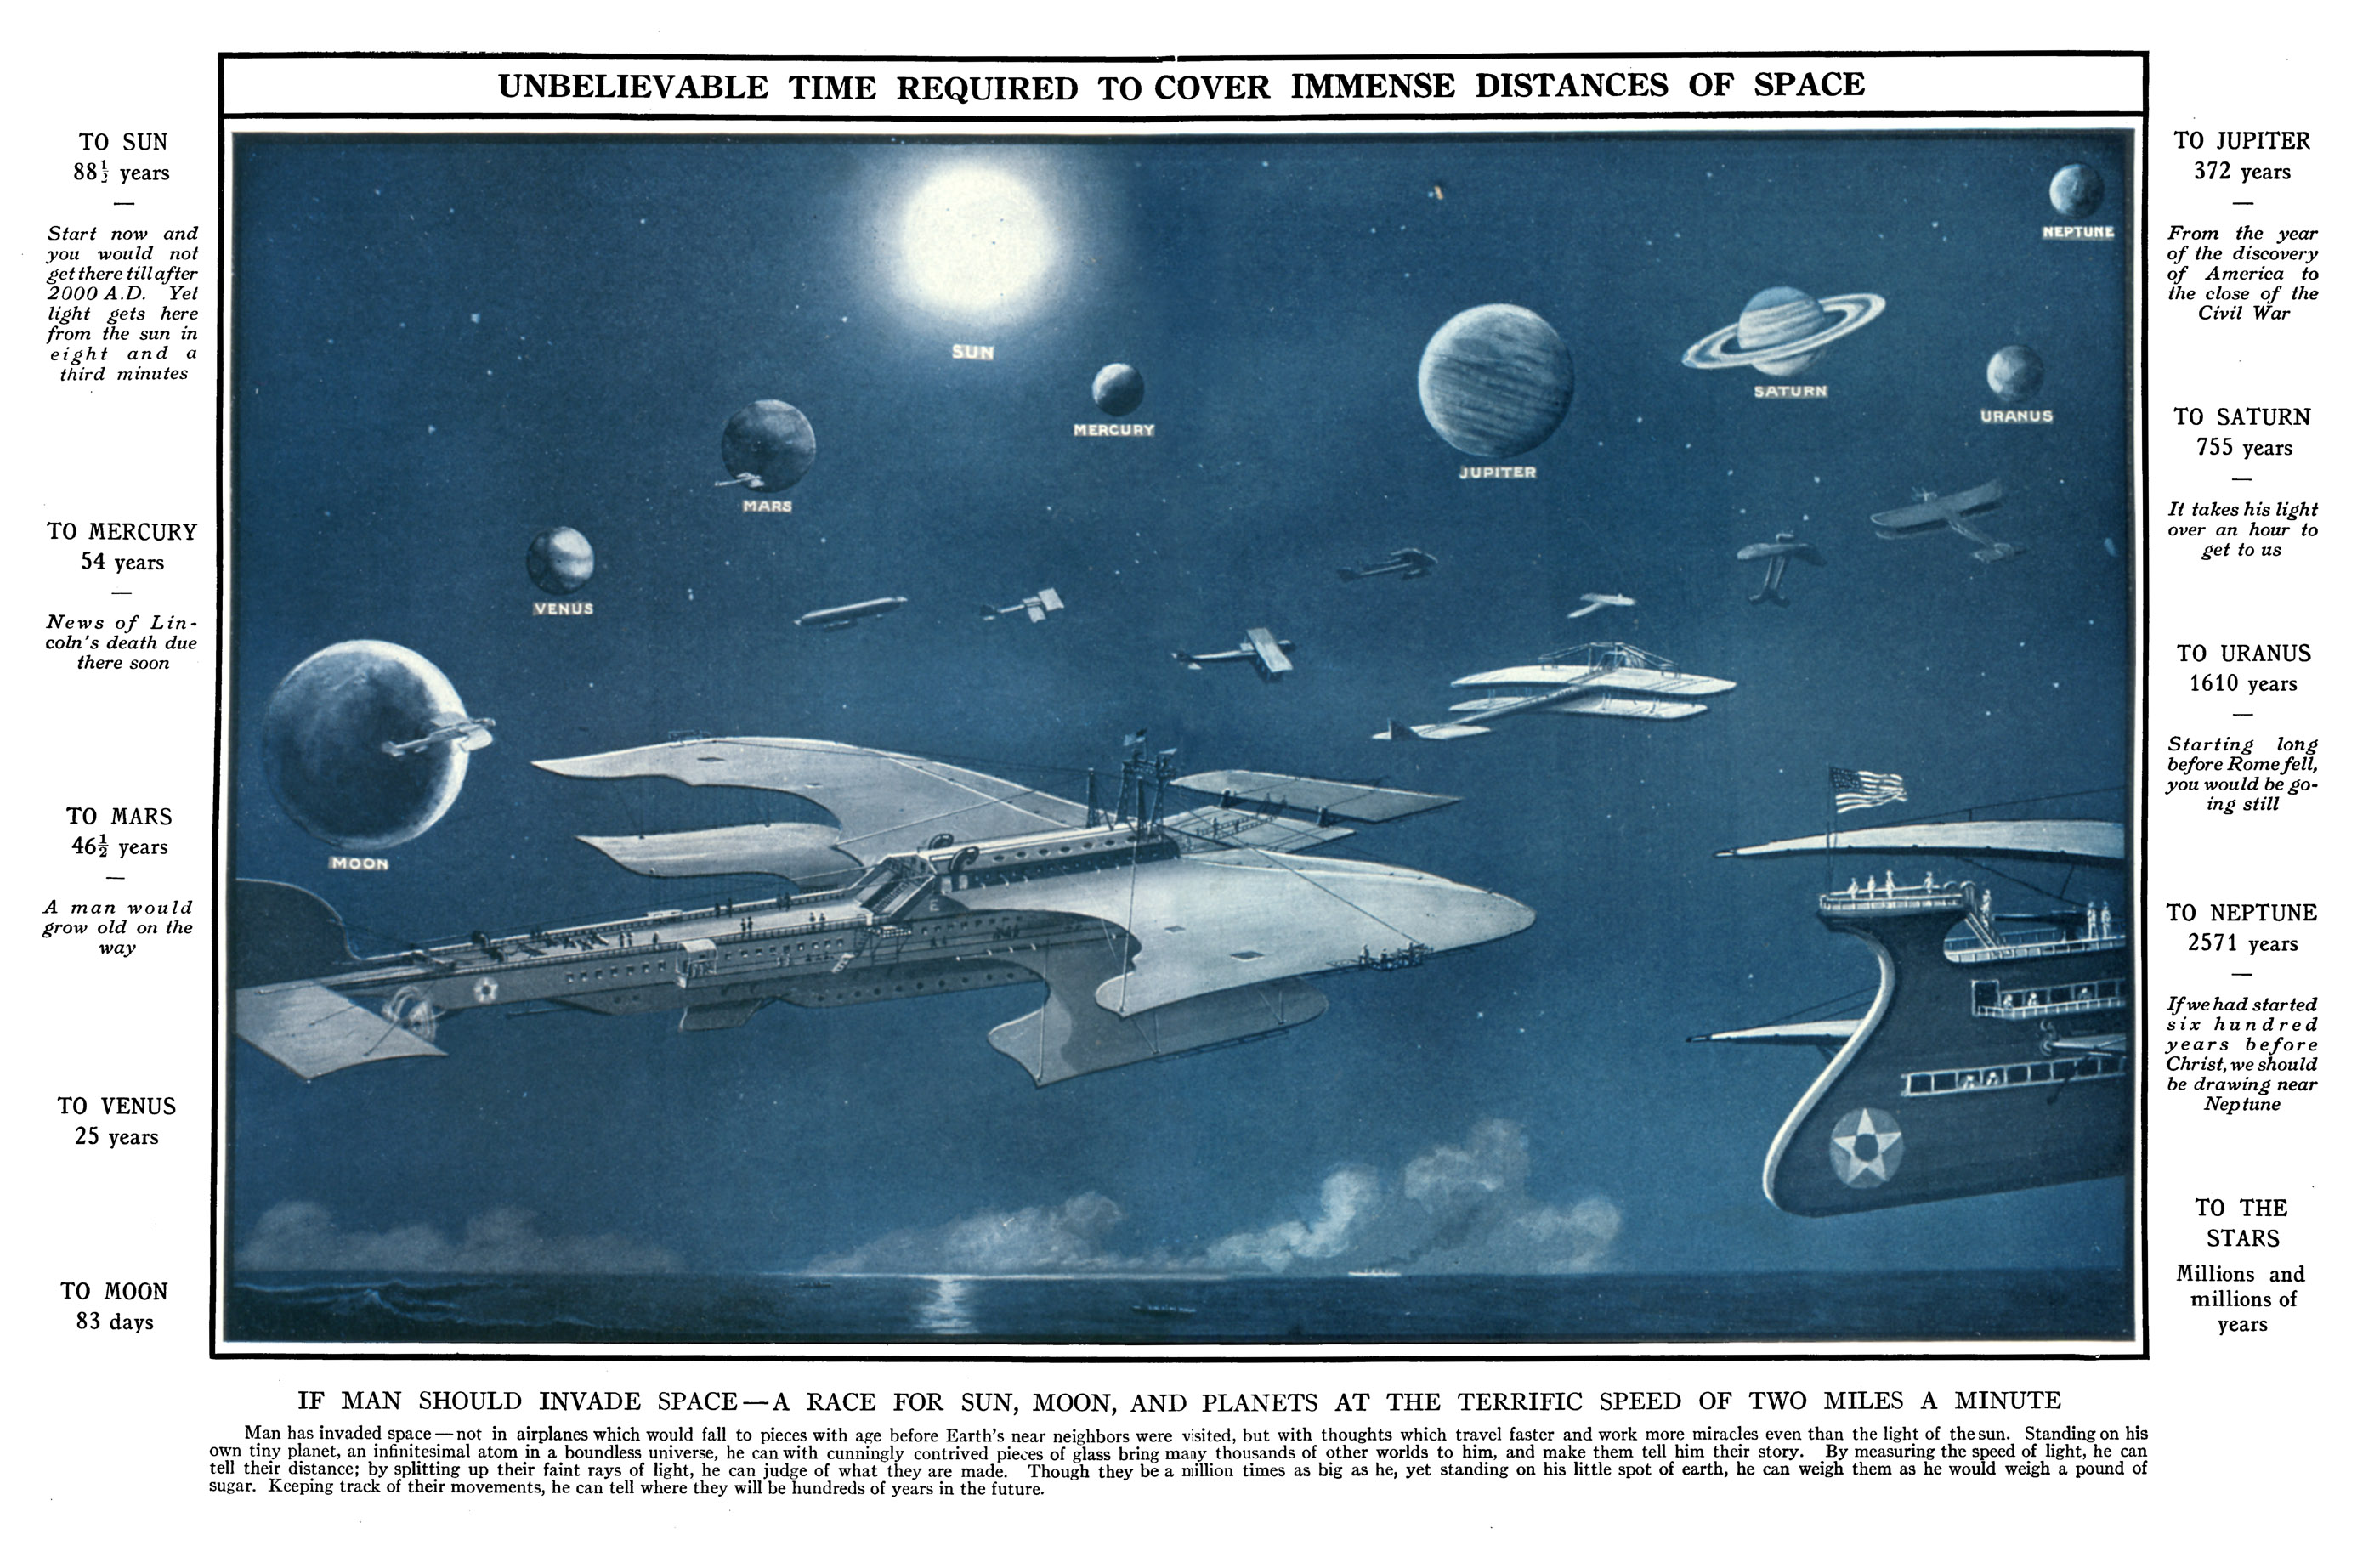 Originals_1392-unbelievable_time_required_to_cover_immense_distances_of_space__1918